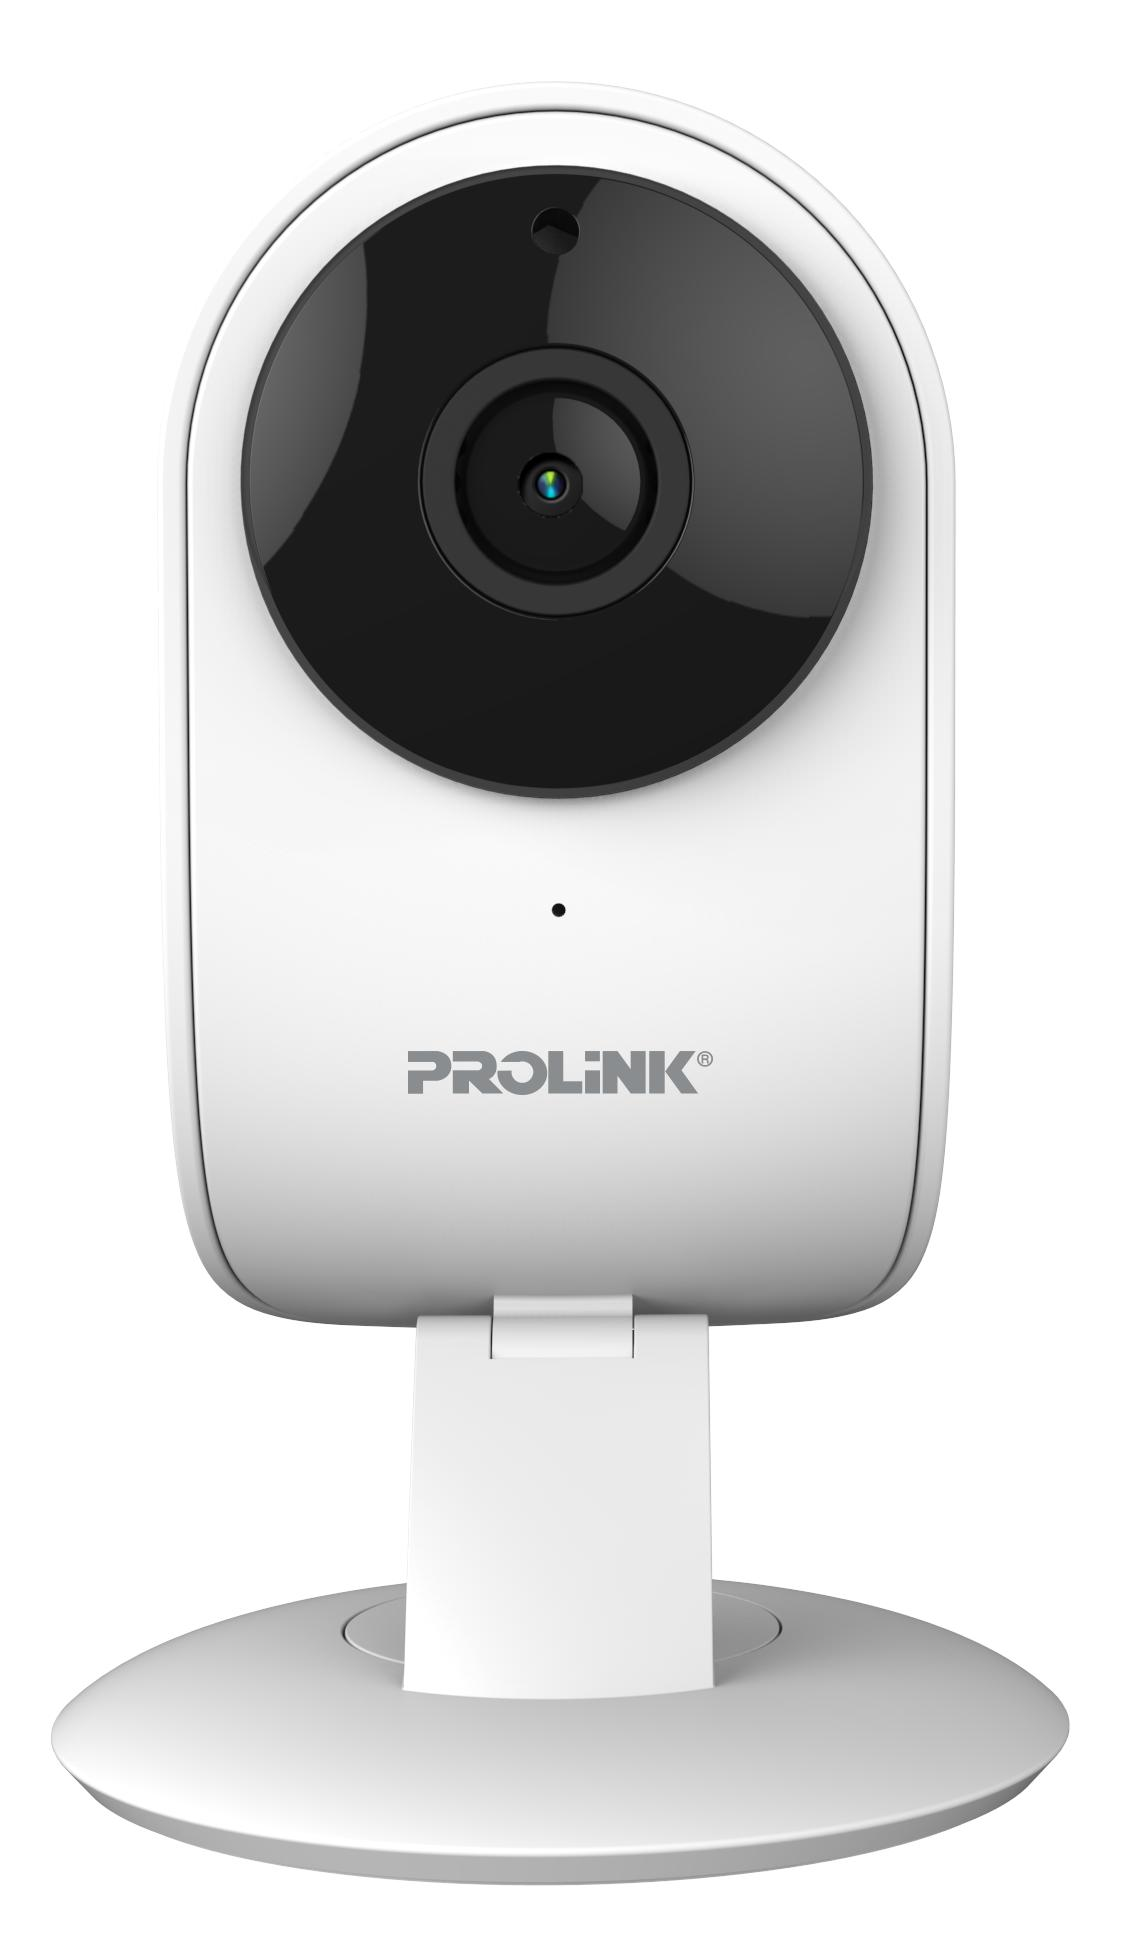 Prolink® Pic3002Wn Full Hd 1080P Smart Wi Fi Ip Camera Best Price